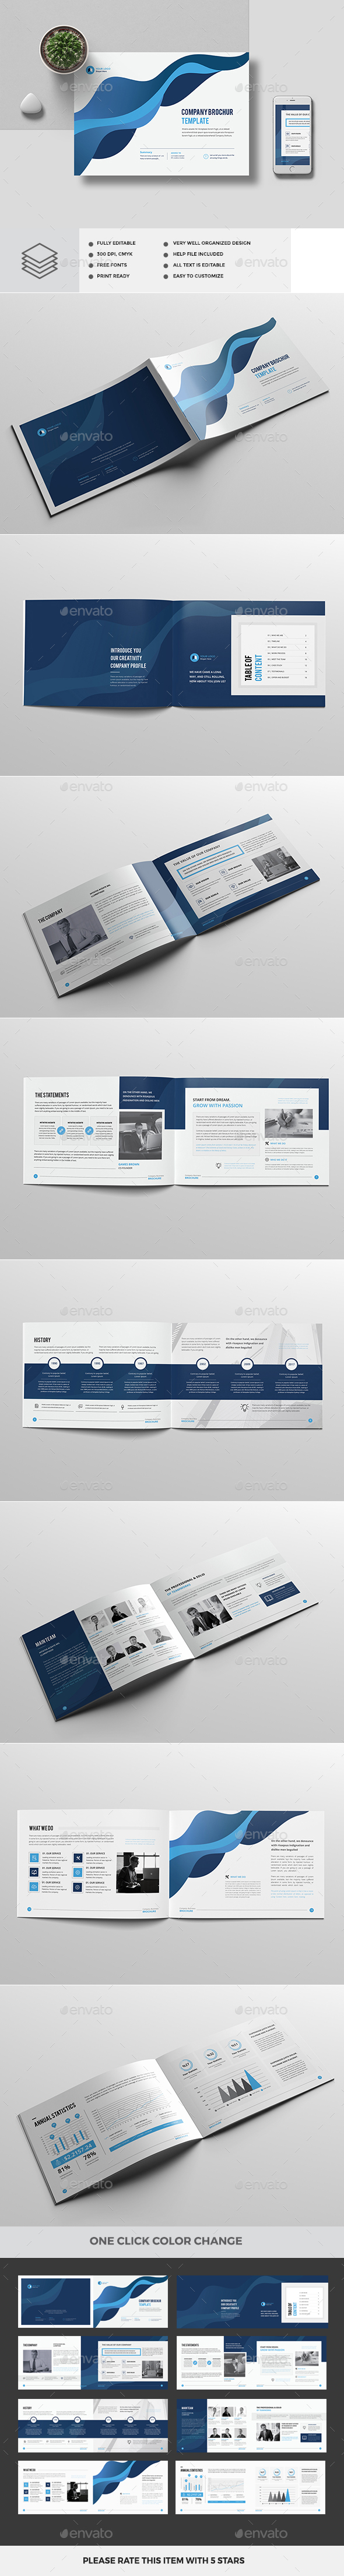 A4 Landscape Company Profile 16 Pages V2 - Corporate Brochures